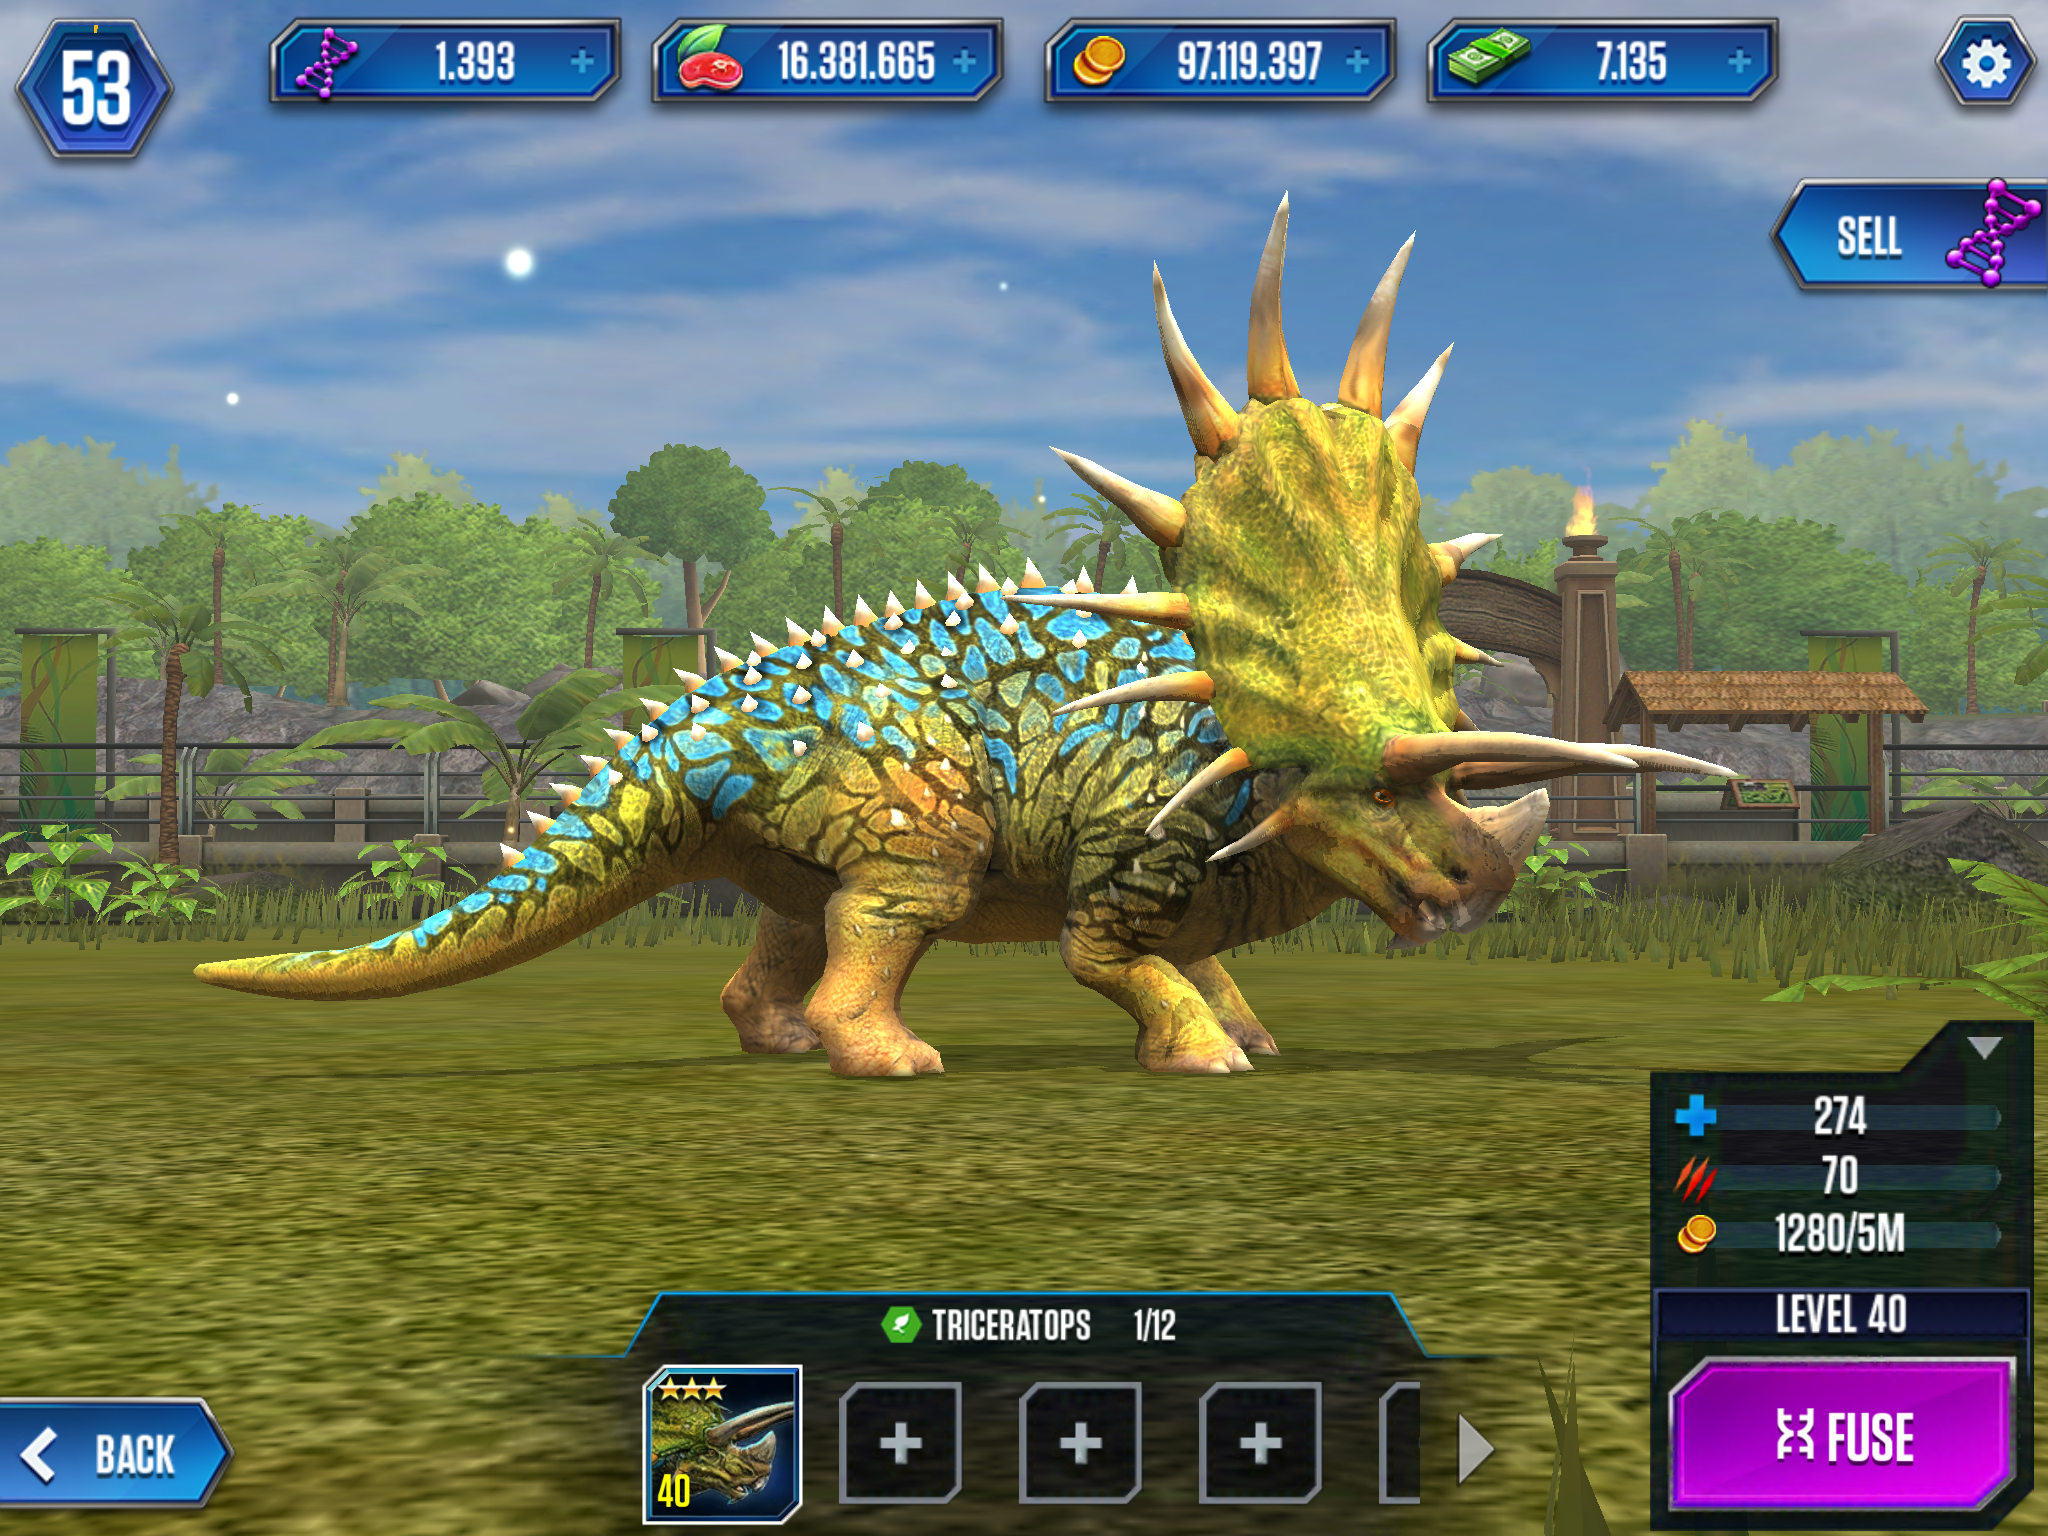 Fully evolved Triceratops from Jurassic World: The Game